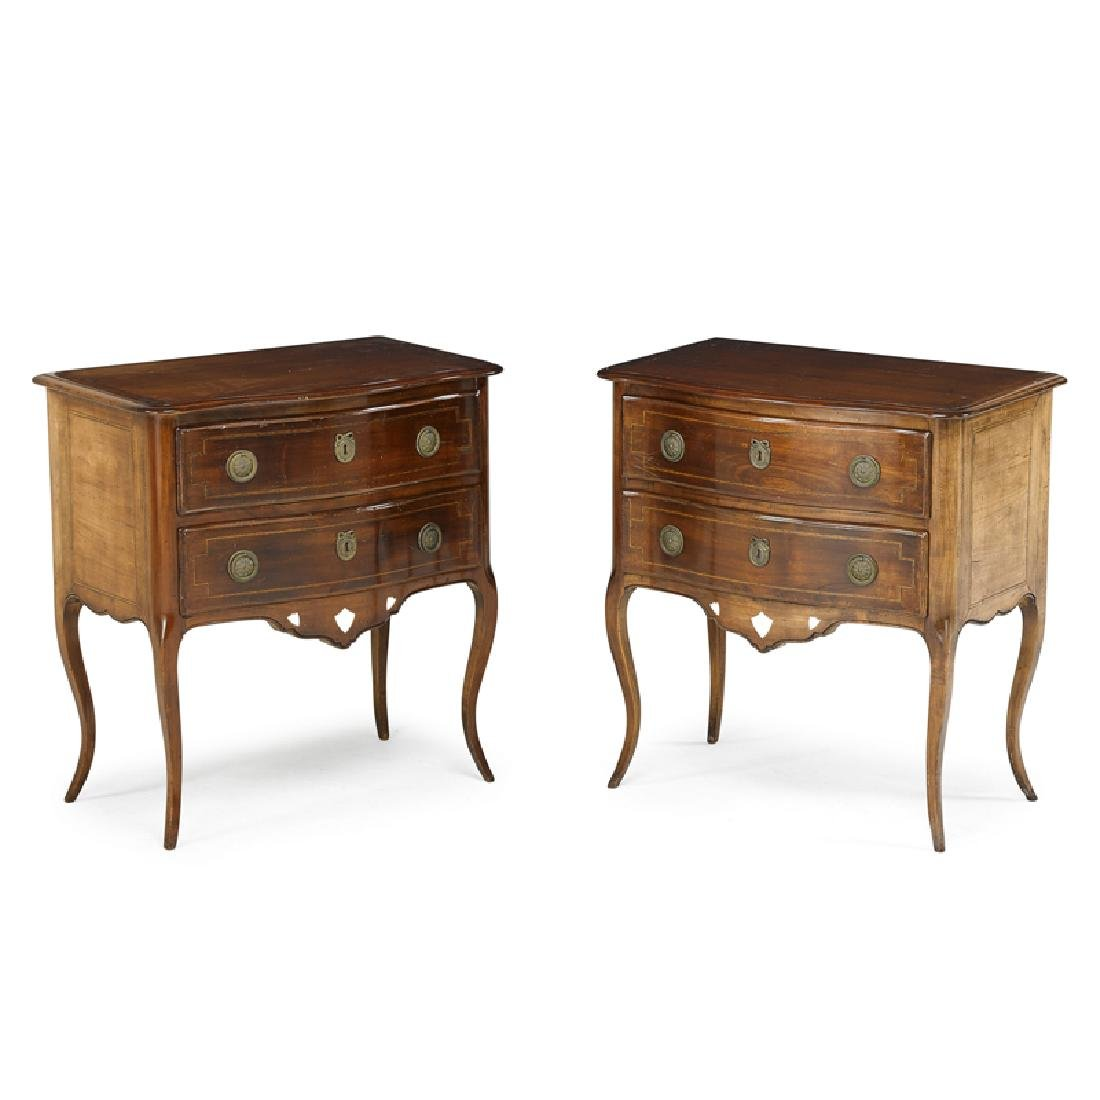 PAIR OF CONTINENTAL CHERRY COMMODES